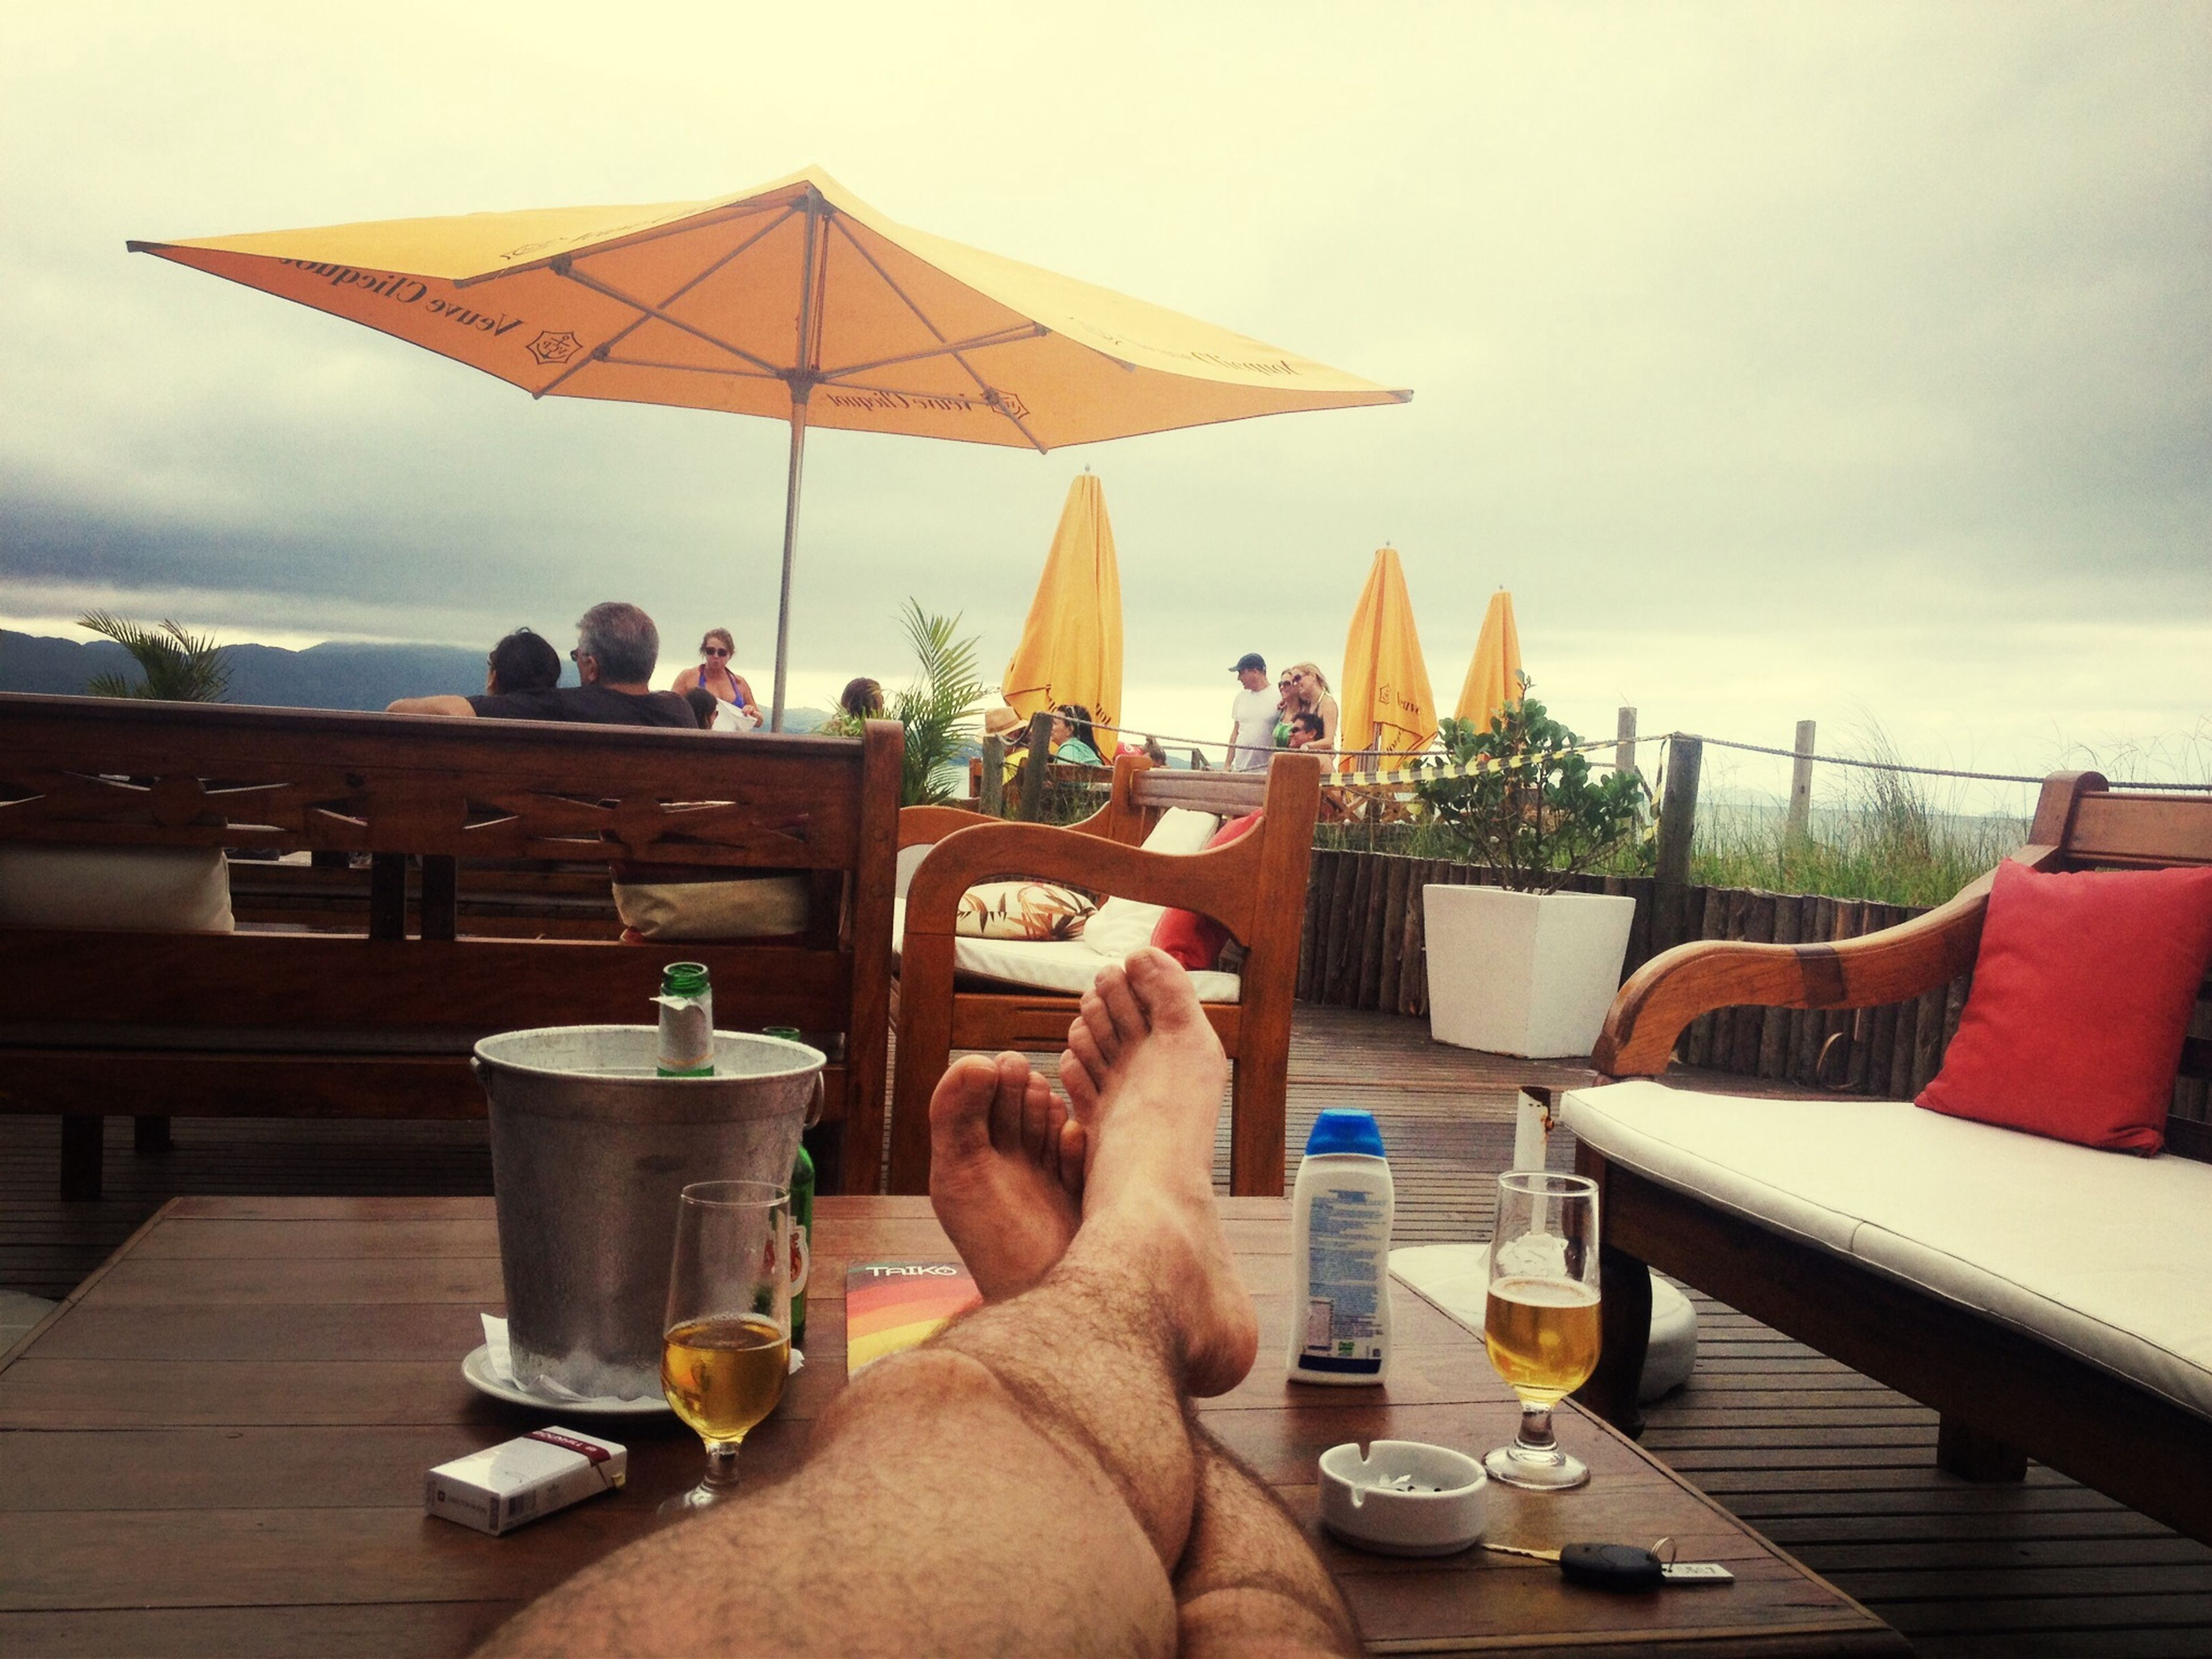 table, chair, person, drink, sky, relaxation, personal perspective, lifestyles, leisure activity, part of, cloud - sky, food and drink, sitting, unrecognizable person, men, cropped, restaurant